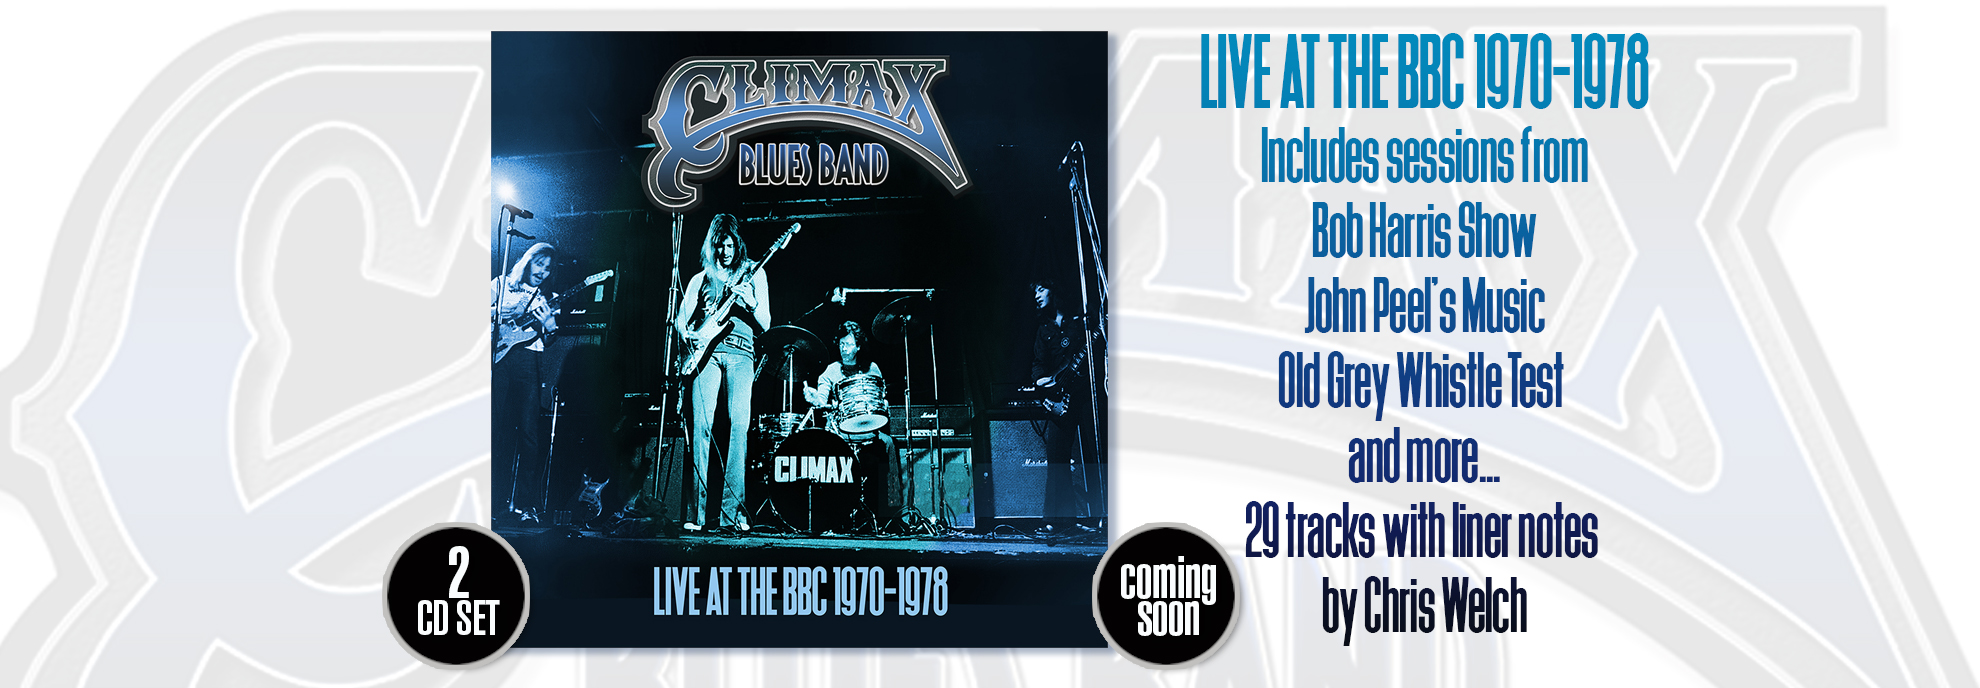 Climax-Blues-Band-BBC-coming-soon